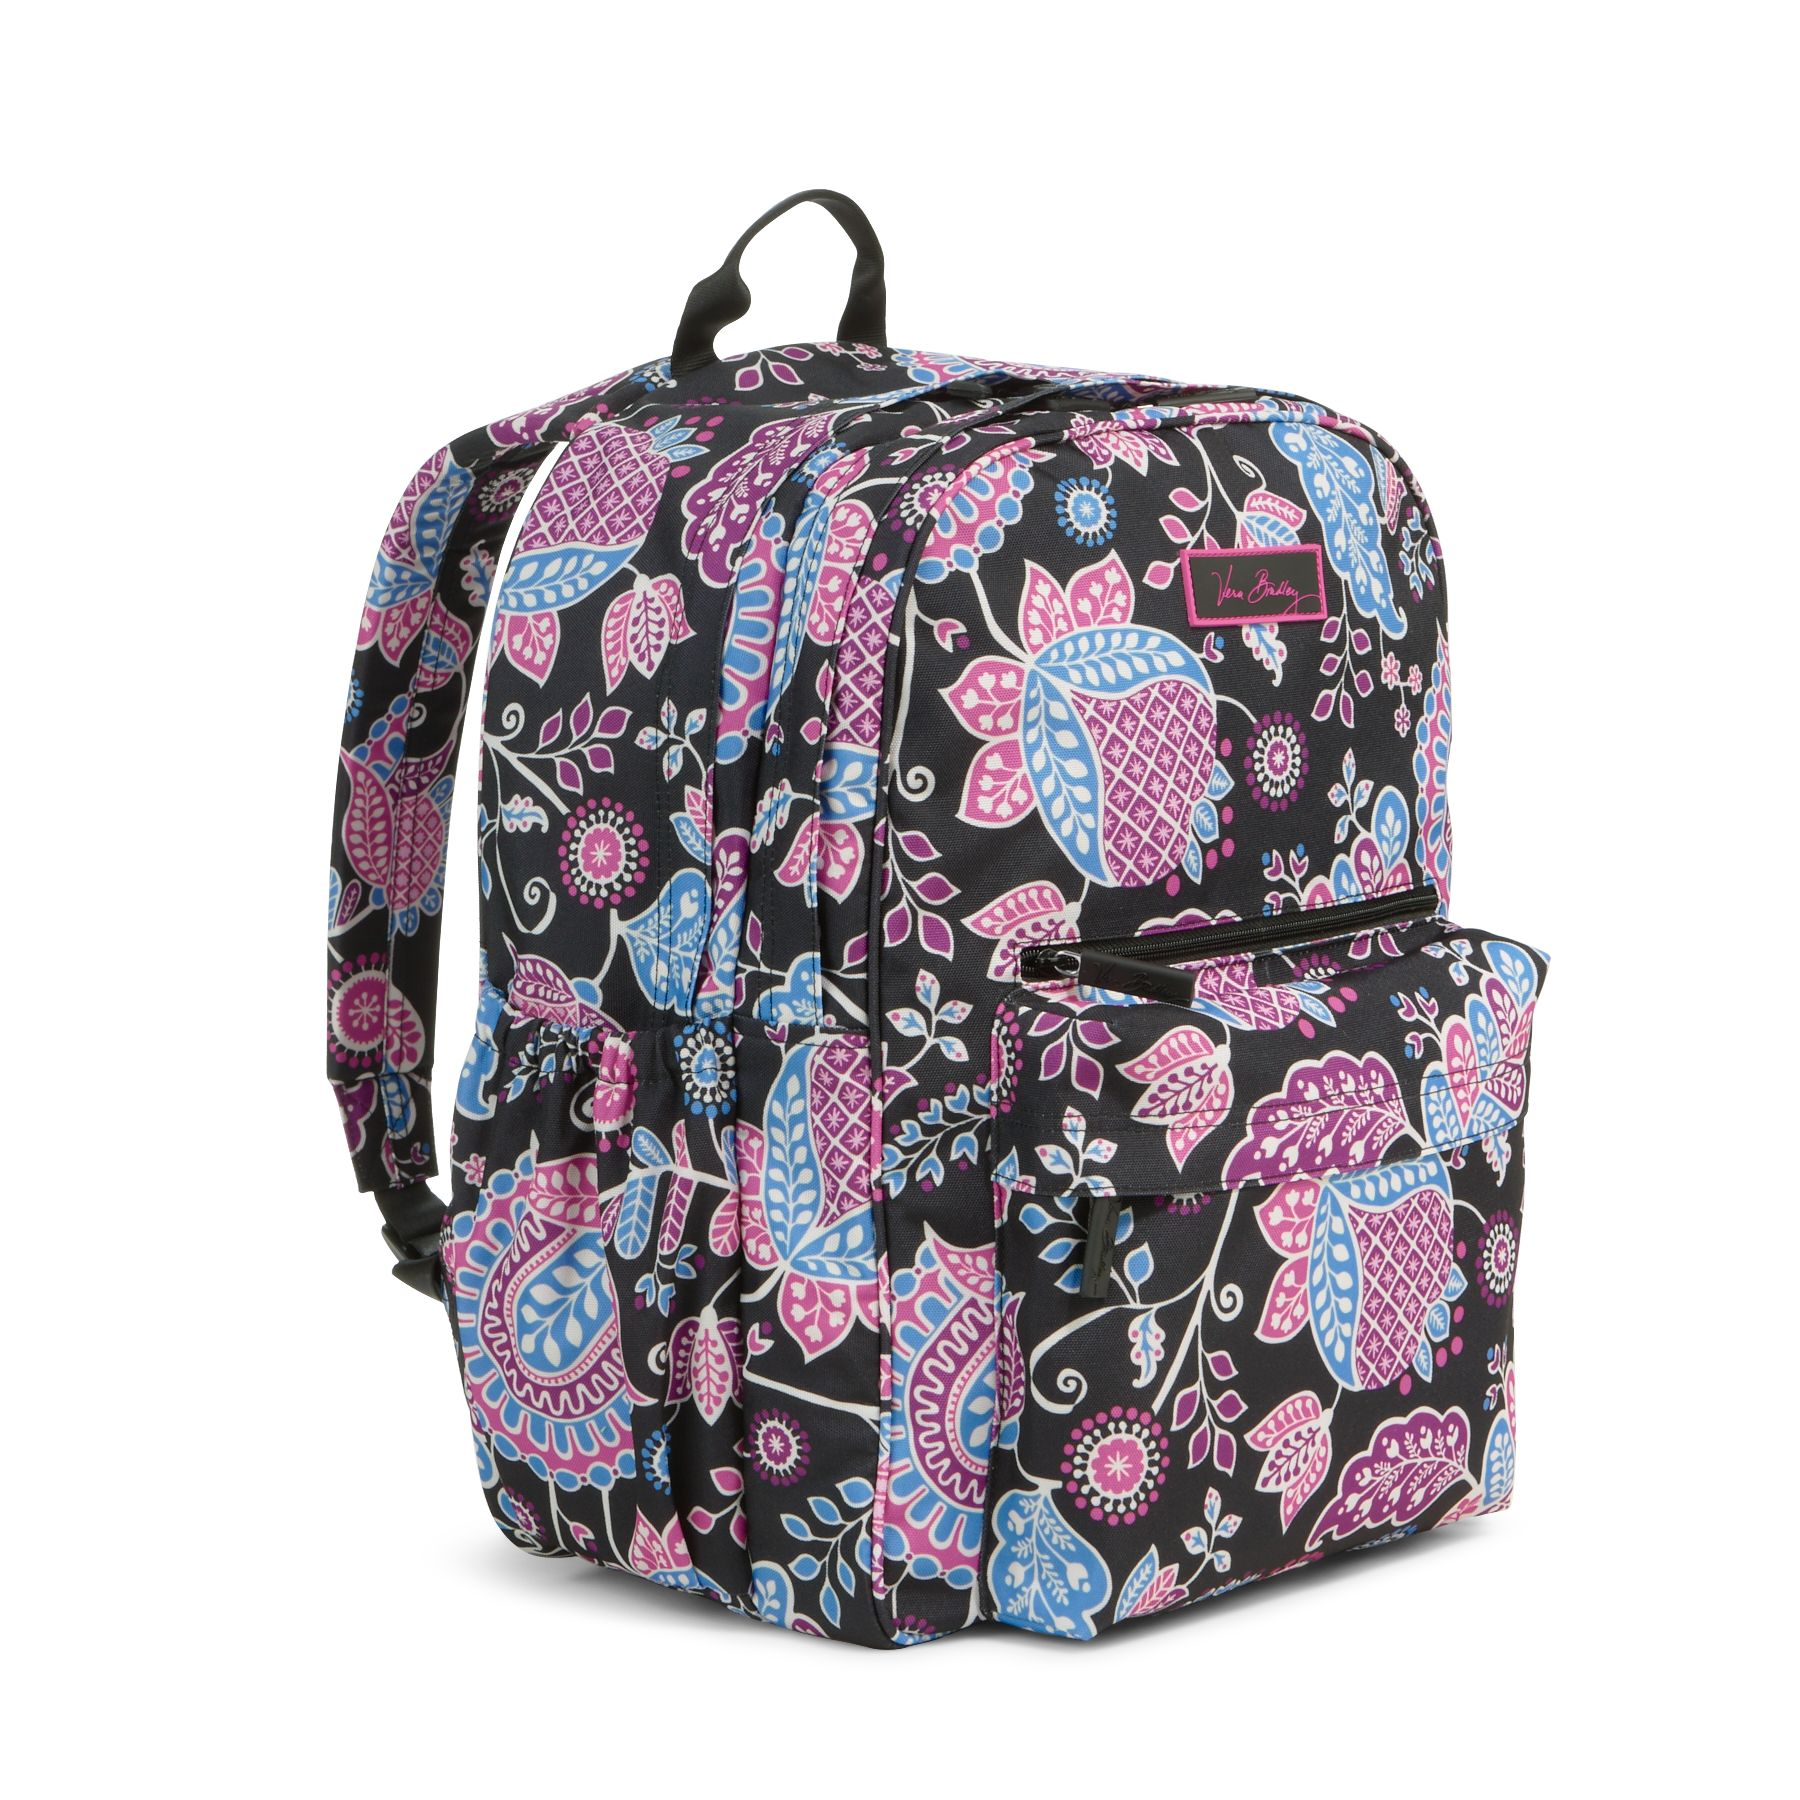 Vera Bradley Lighten Up Grande Backpack Bag Ebay